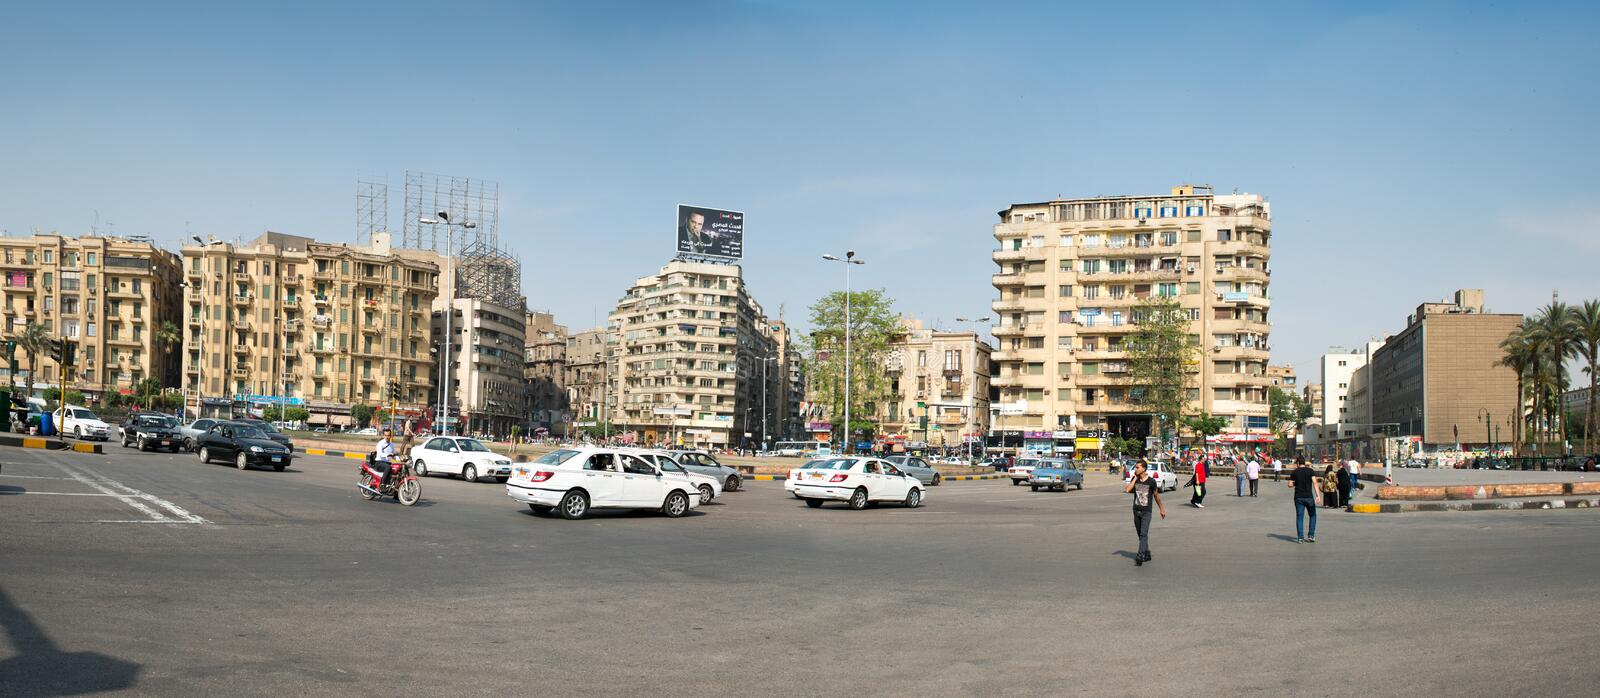 The famous Tahrir square in Cairo. Egypt. Tahrir square - place there thousands of protesters made Egyptians uprising in January 2011 stock image